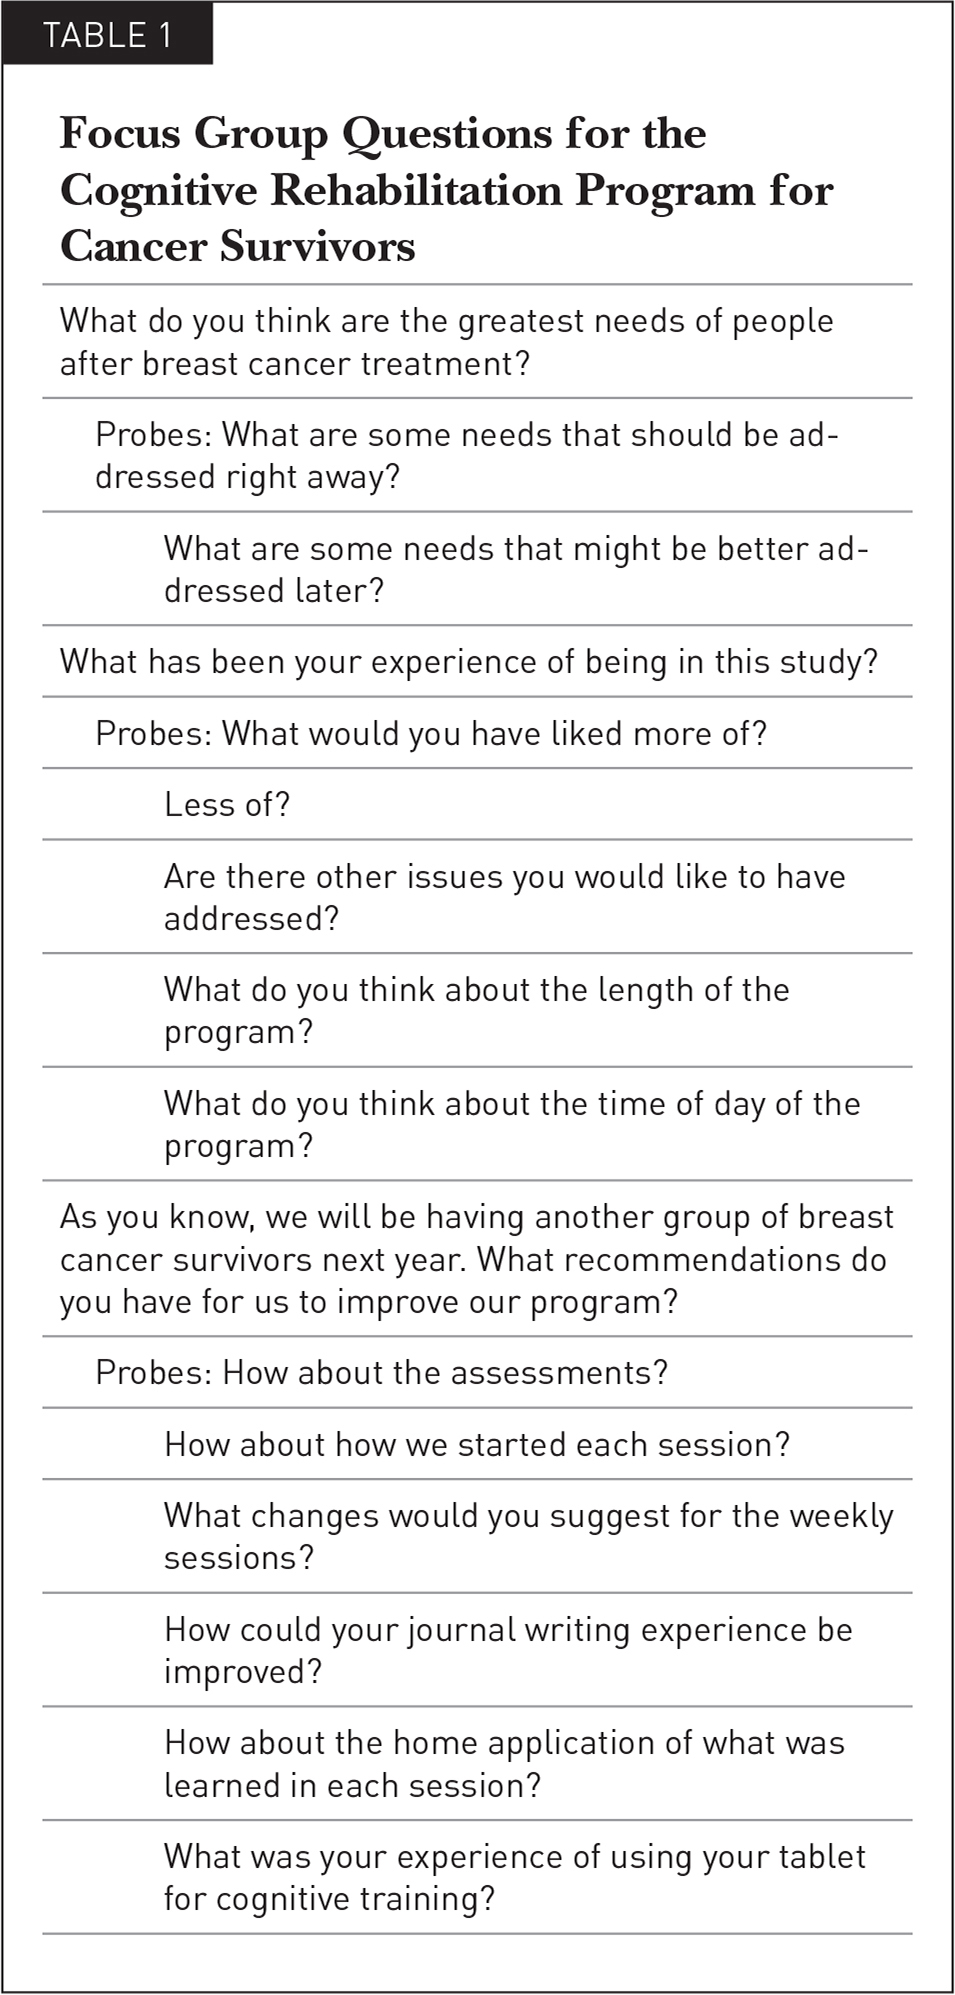 Focus Group Questions for the Cognitive Rehabilitation Program for Cancer Survivors